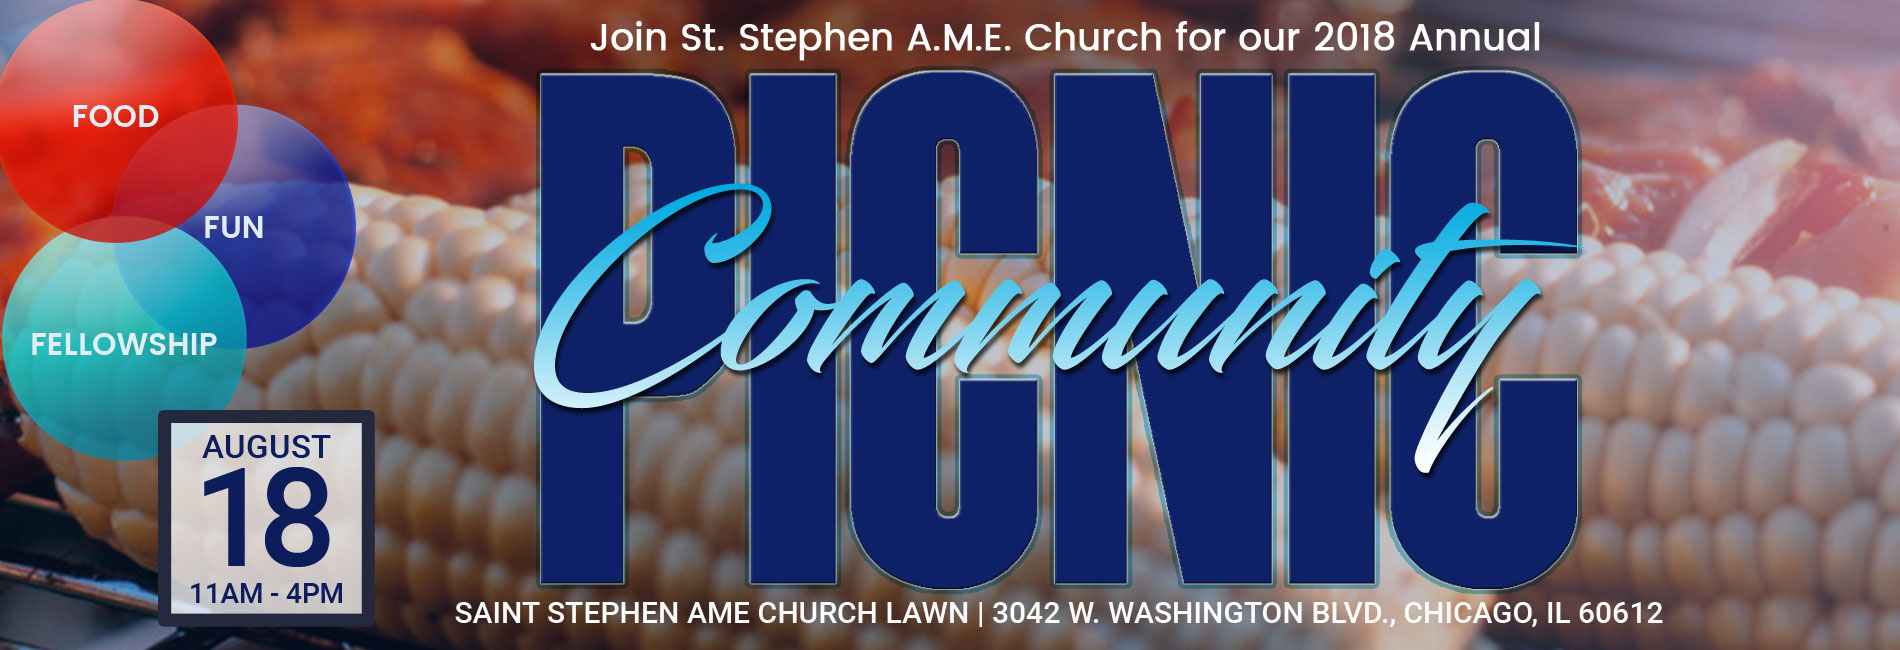 Annual Community Picnic